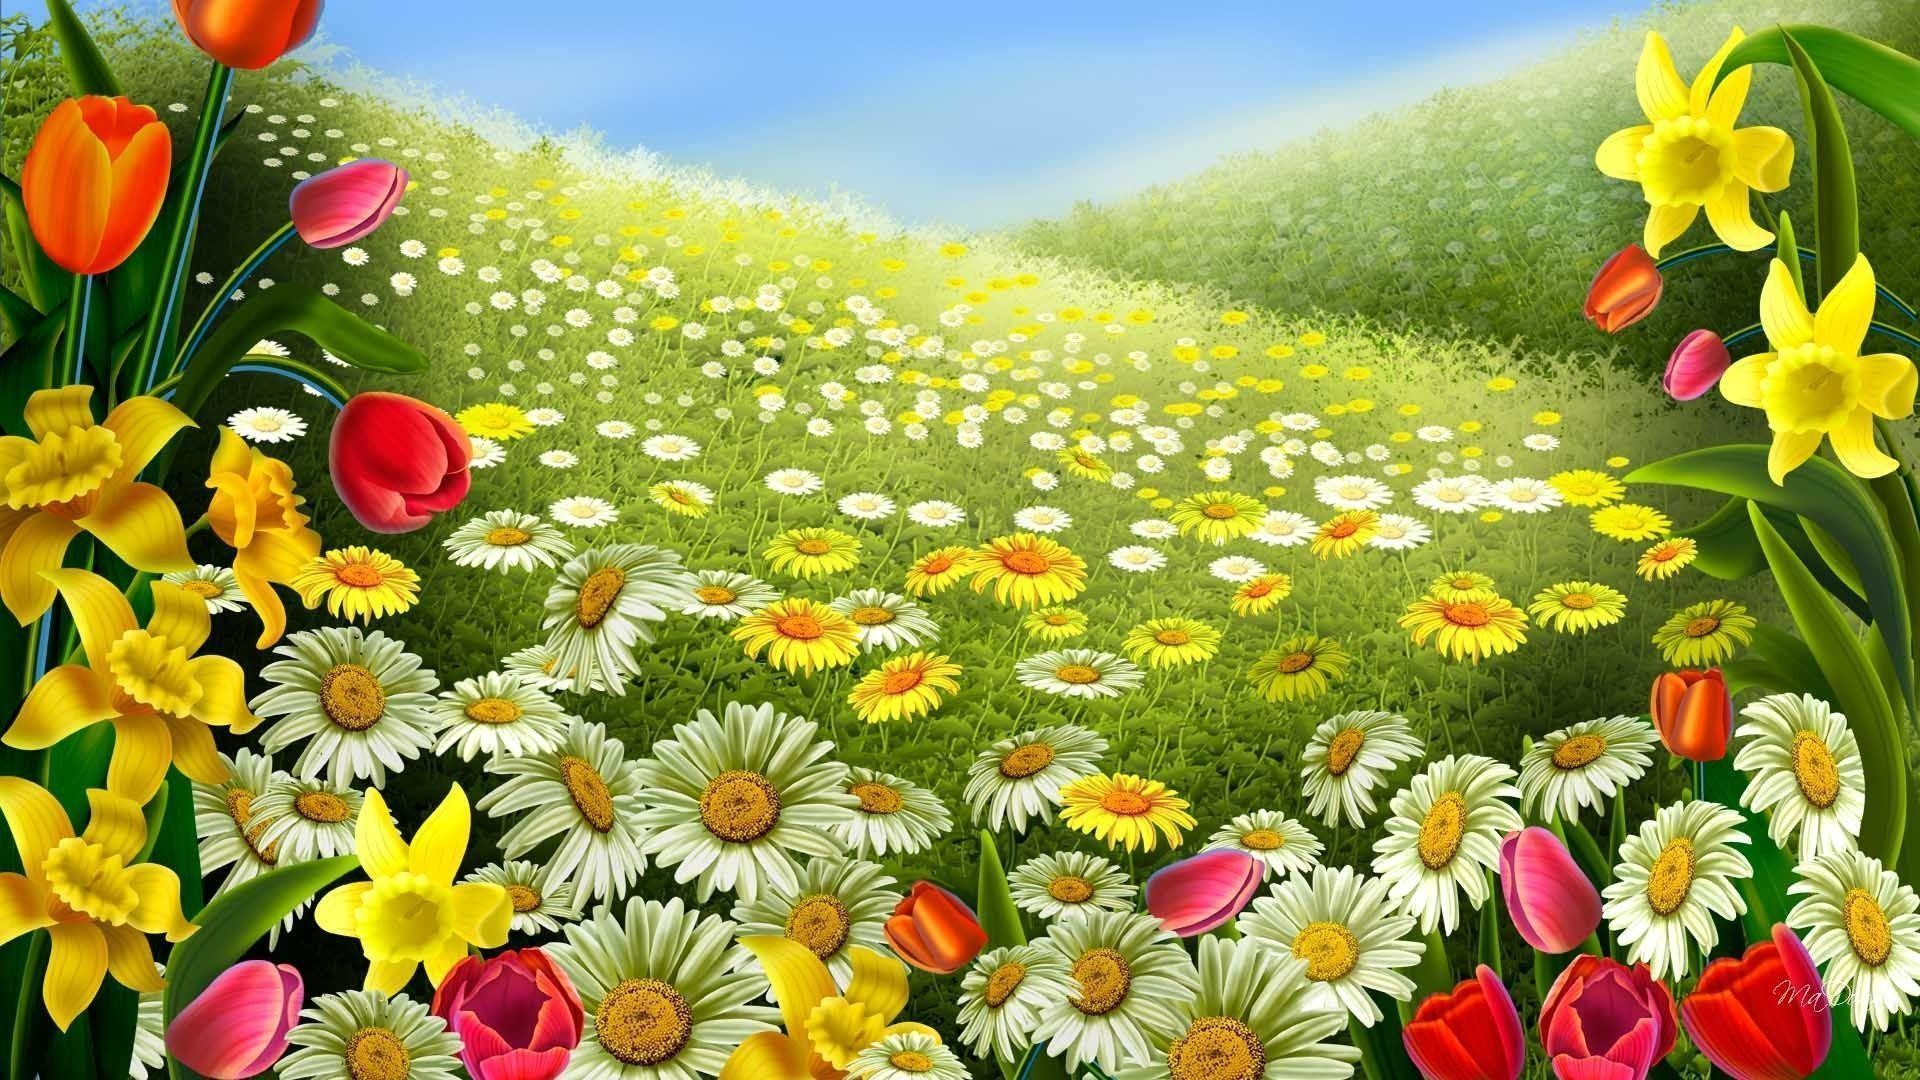 Desktop Backgrounds Hd Spring Wallpapers 1920x1080PX ~ Spring .